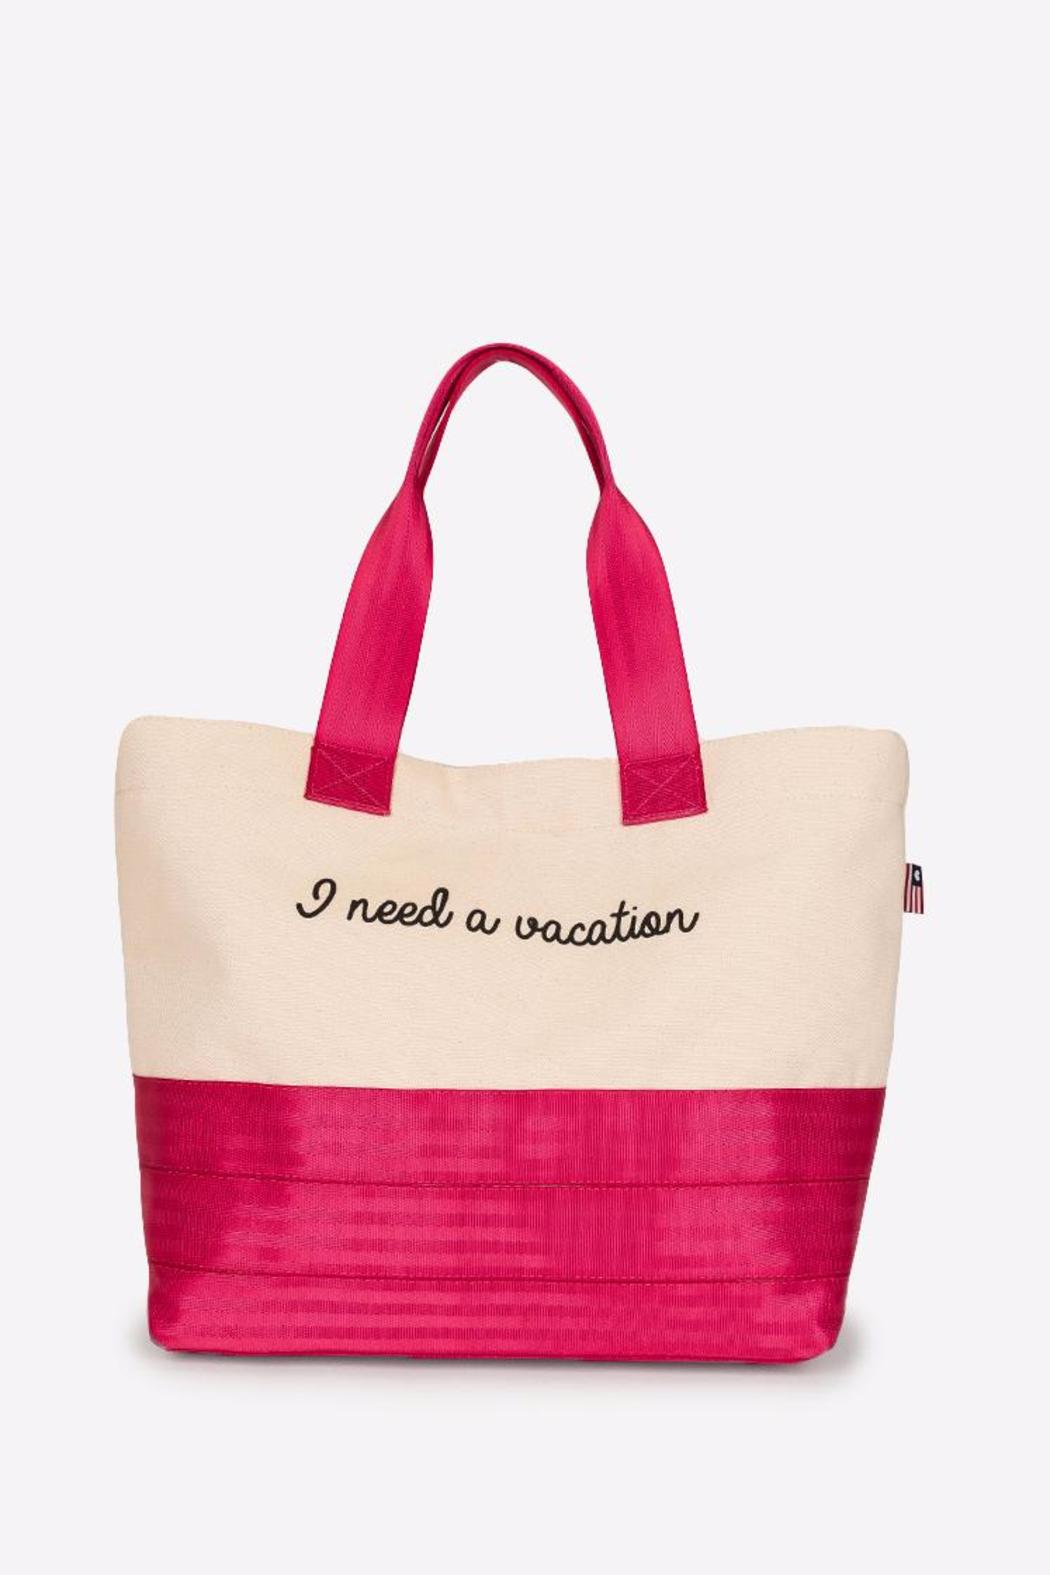 Vacation Tote Bags